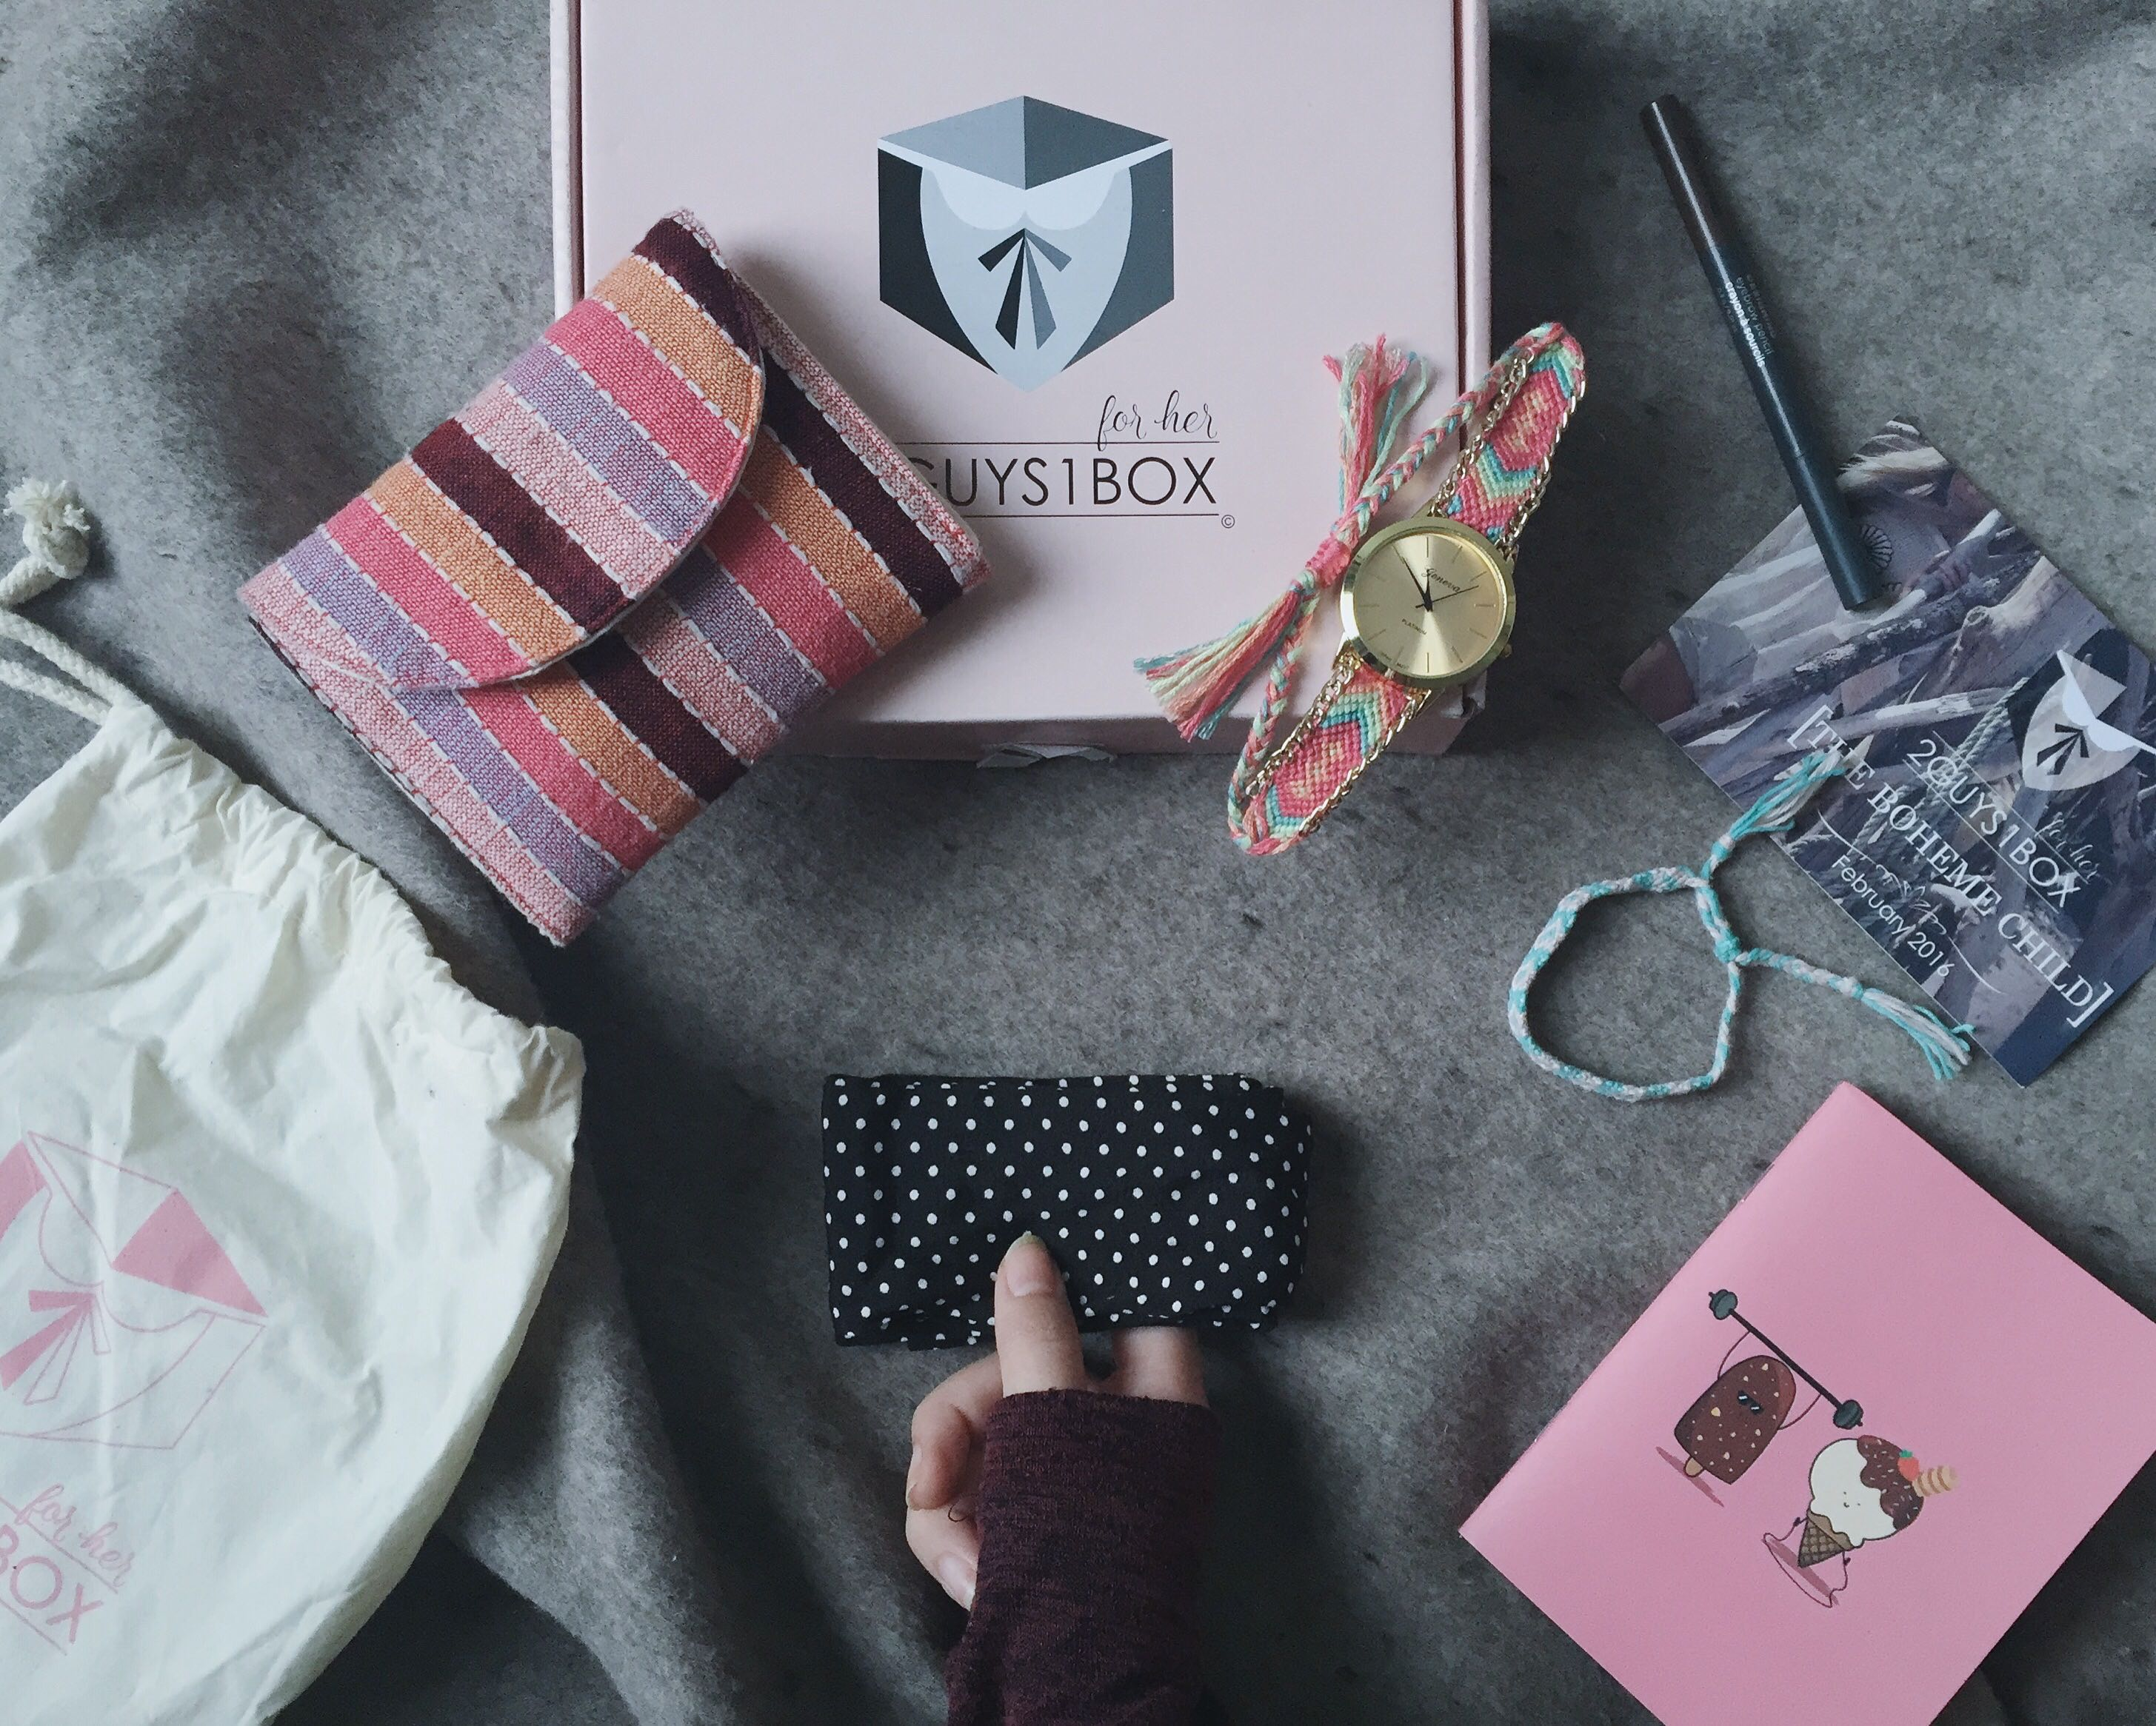 2guys1box - first subscription box service in vietnam hinh 2